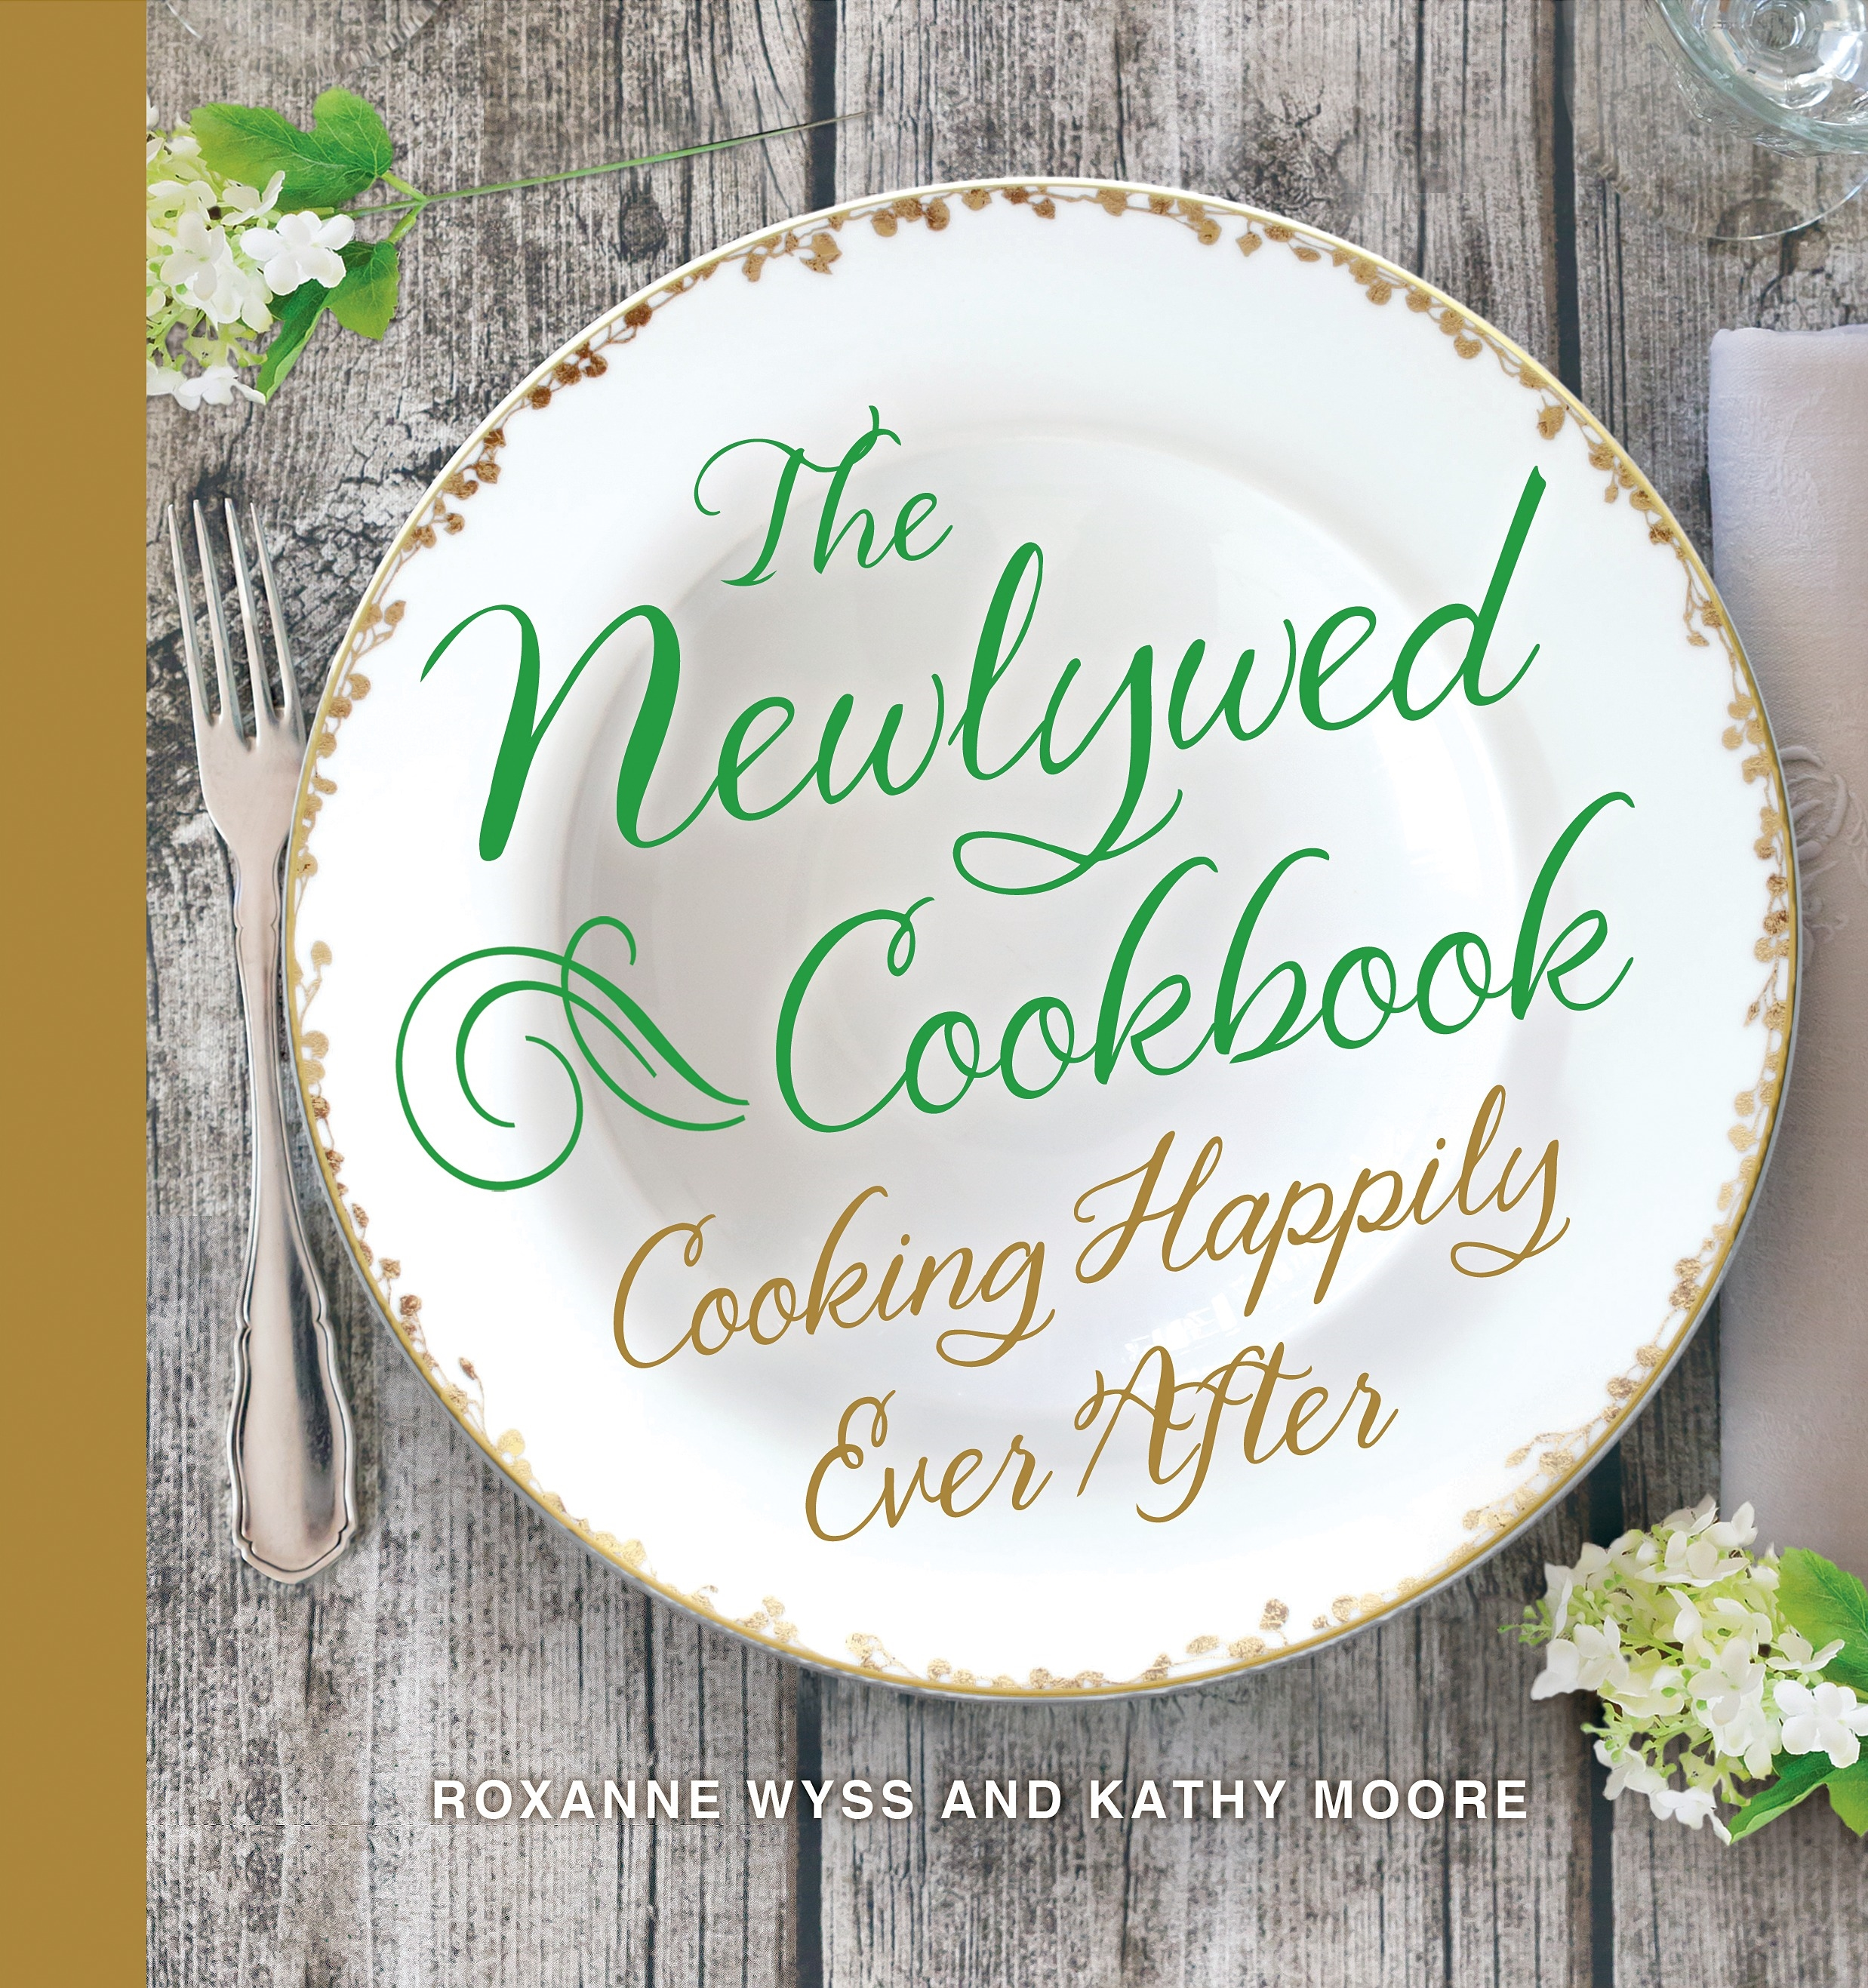 The Newlywed Cookbook : Cooking Happily Ever After